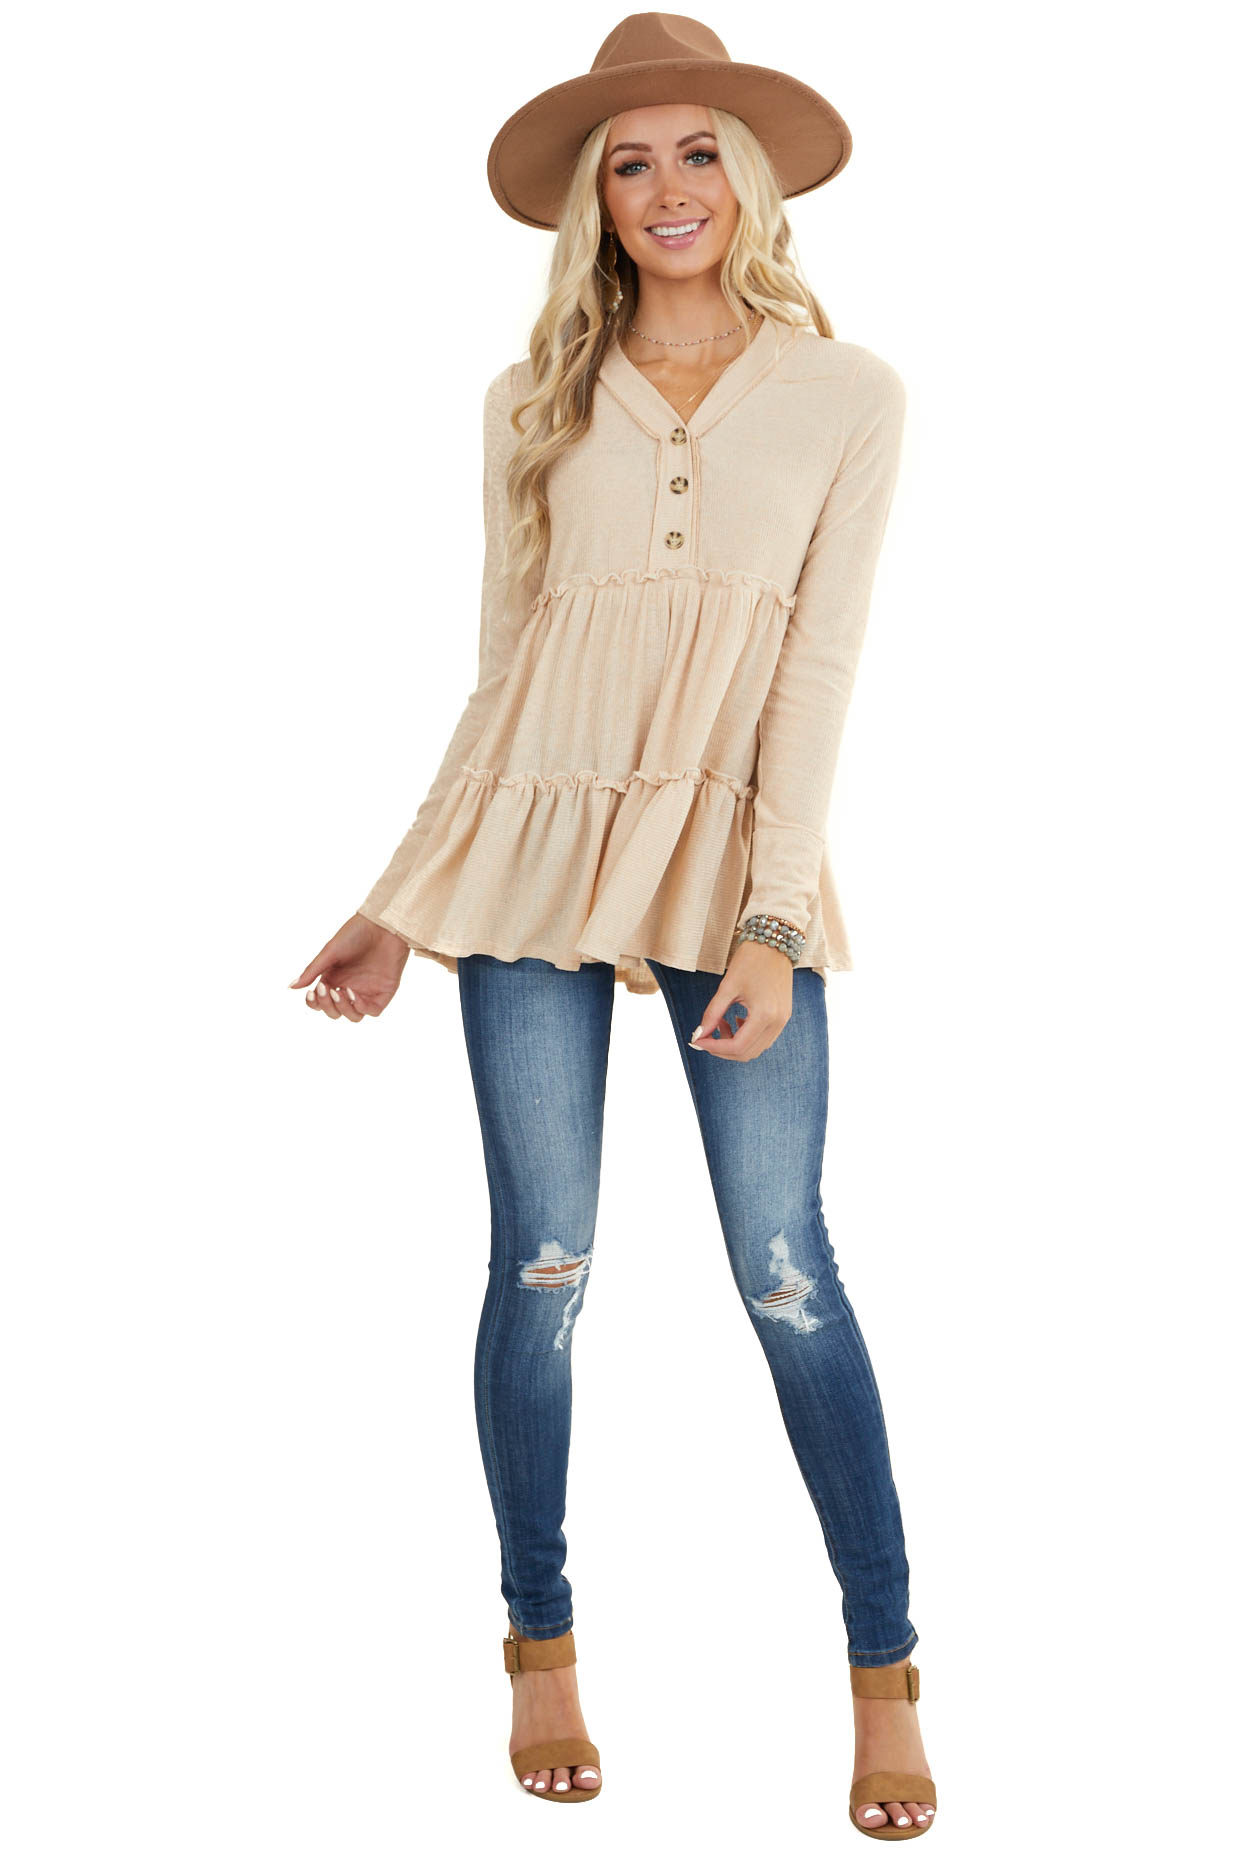 Desert Sand Long Sleeve Babydoll Knit Top with Button Detail